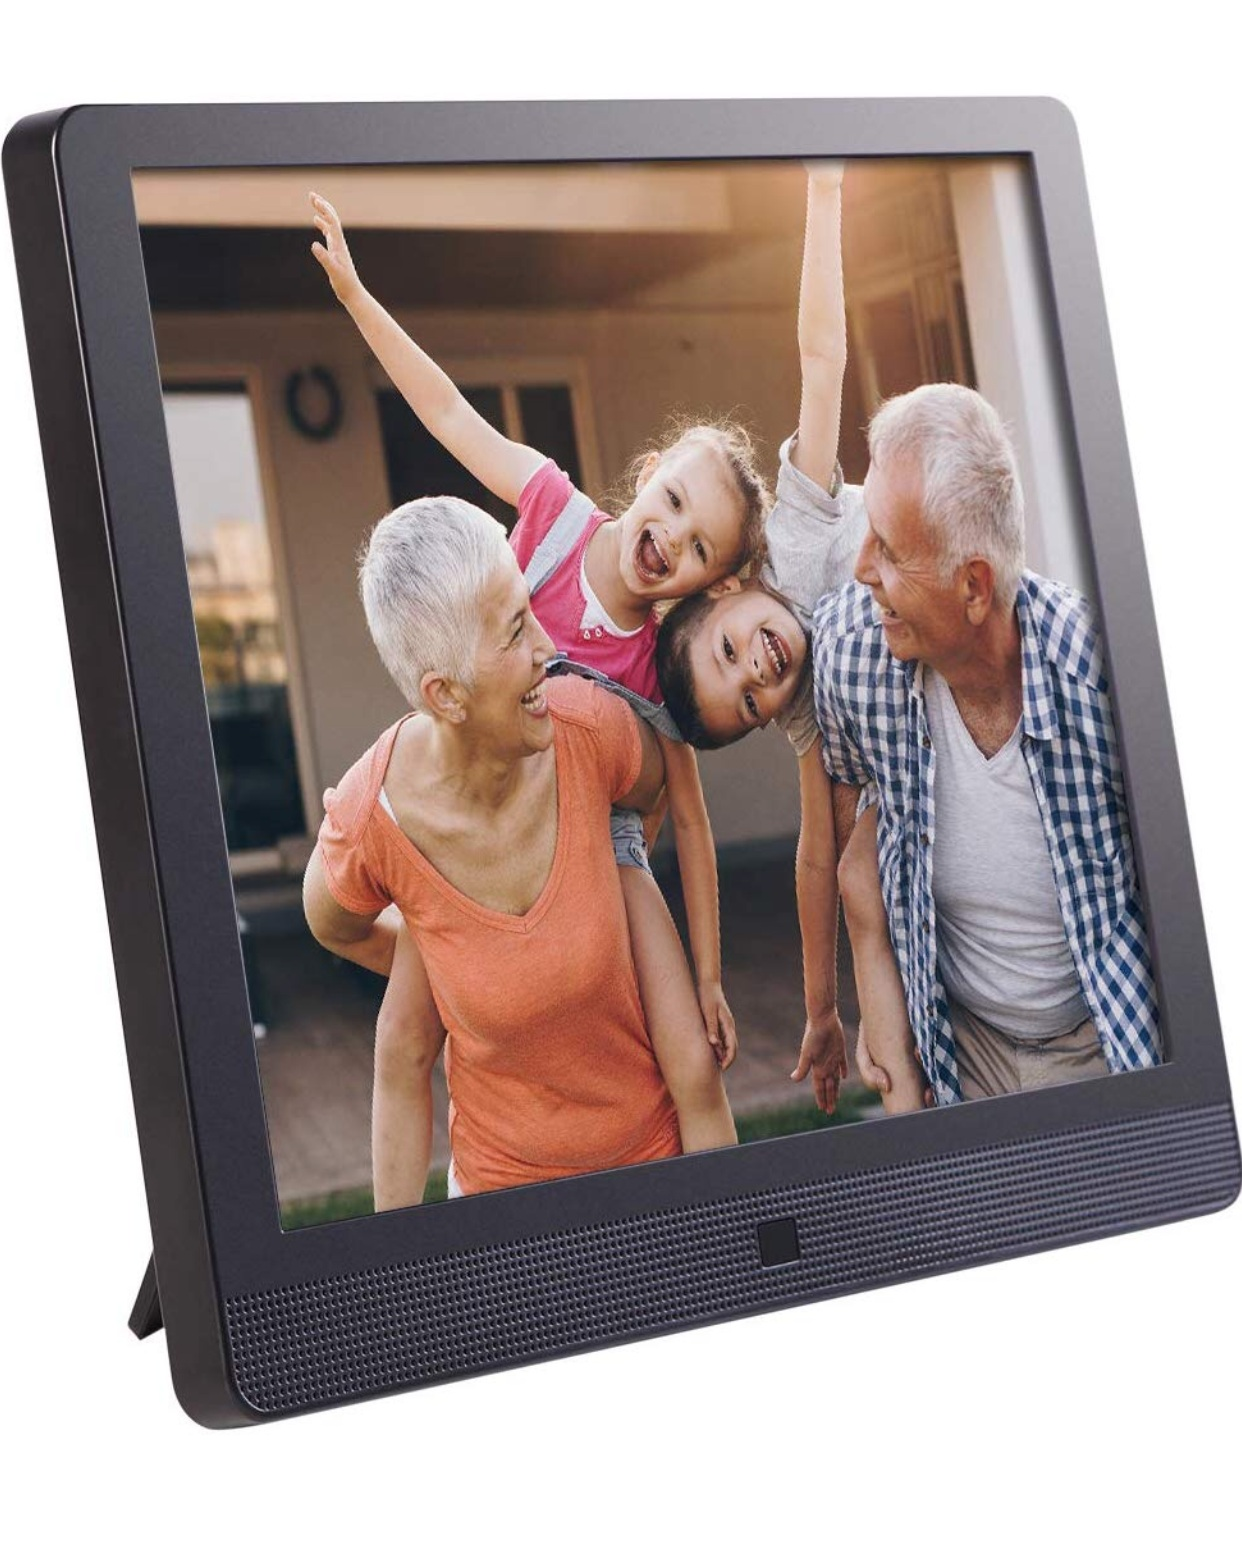 - Ok, I'm pretty sure this is our family's favorite item perhaps of all time. Basically, it comes with a built in email address, you can email photos and videos up to 2 minutes long and they literally beam to the frame and pop up on the screen. It's amazing and so easy to set up and use. A Grandparents dream!Find it here.